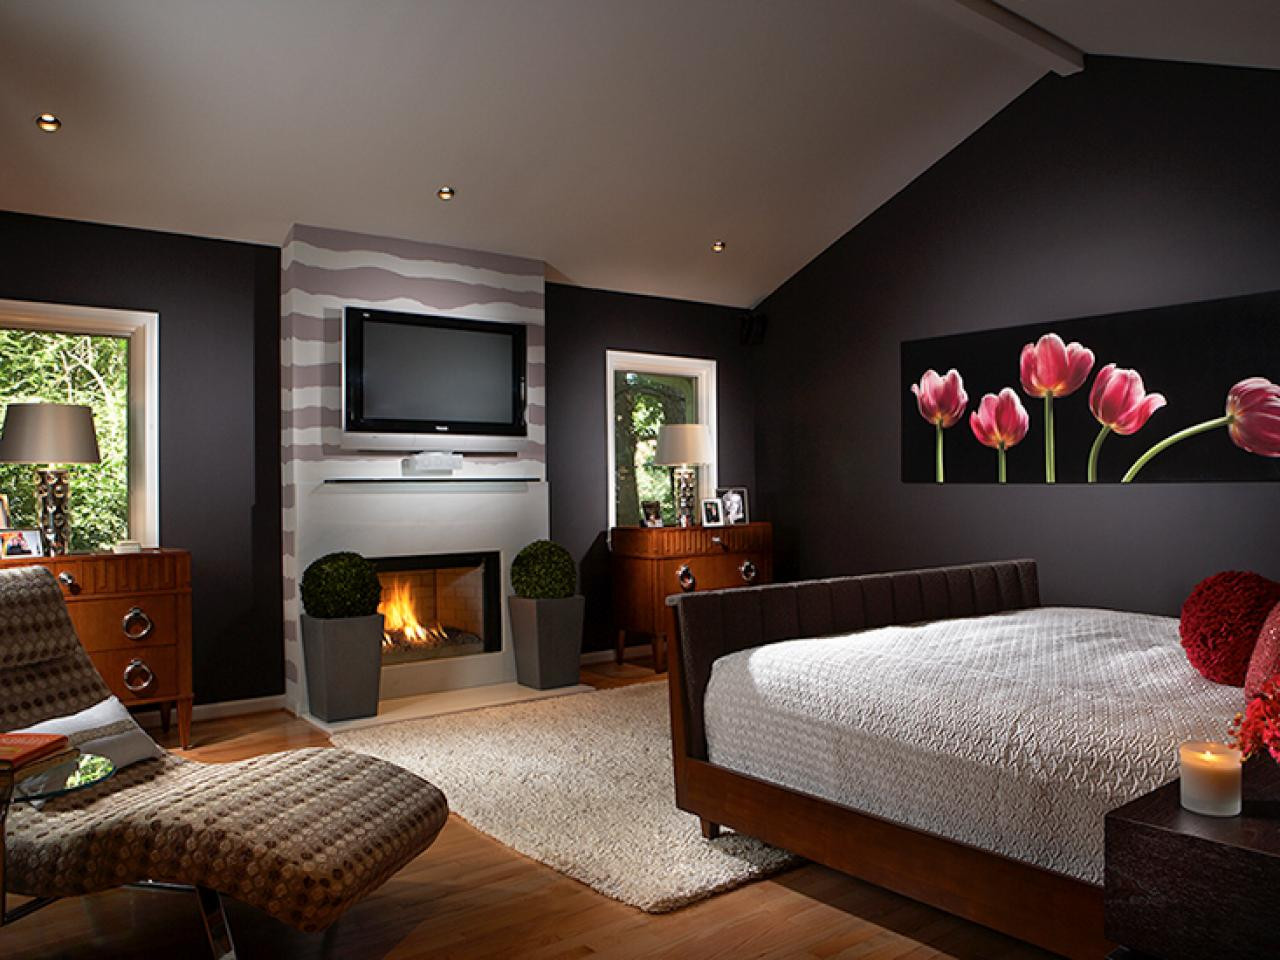 Wall Paint Ideas For Bedroom  Four Amazing Colors to Paint Your Bedroom Walls with